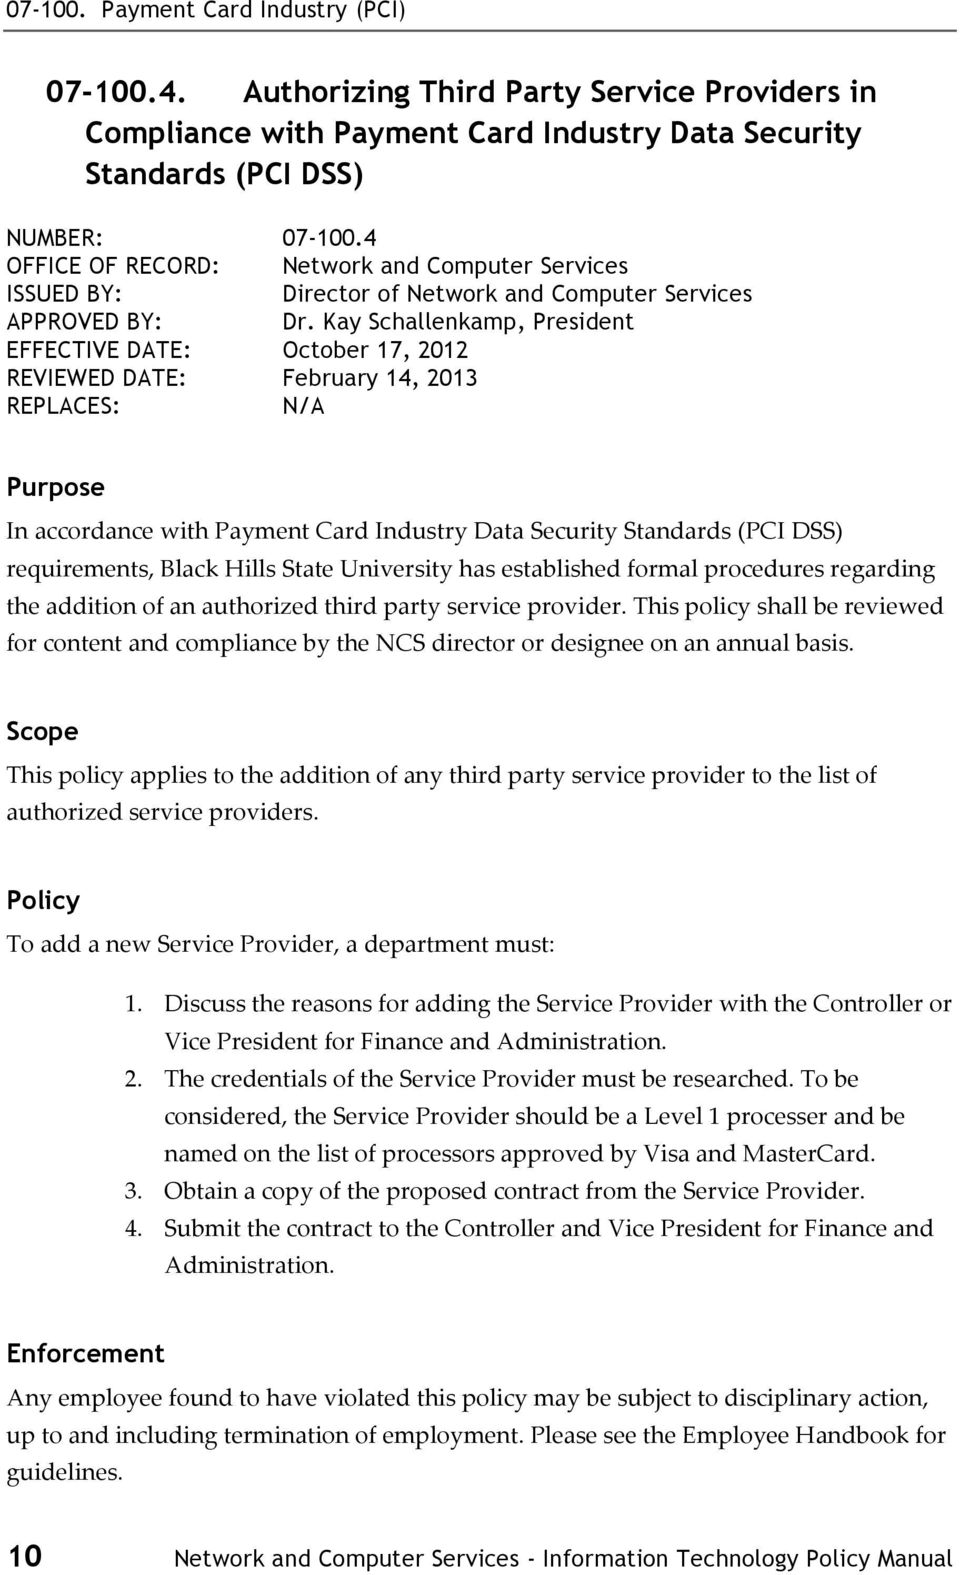 Kay Schallenkamp, President EFFECTIVE DATE: October 17, 2012 REVIEWED DATE: February 14, 2013 REPLACES: N/A Purpose In accordance with Payment Card Industry Data Security Standards (PCI DSS)